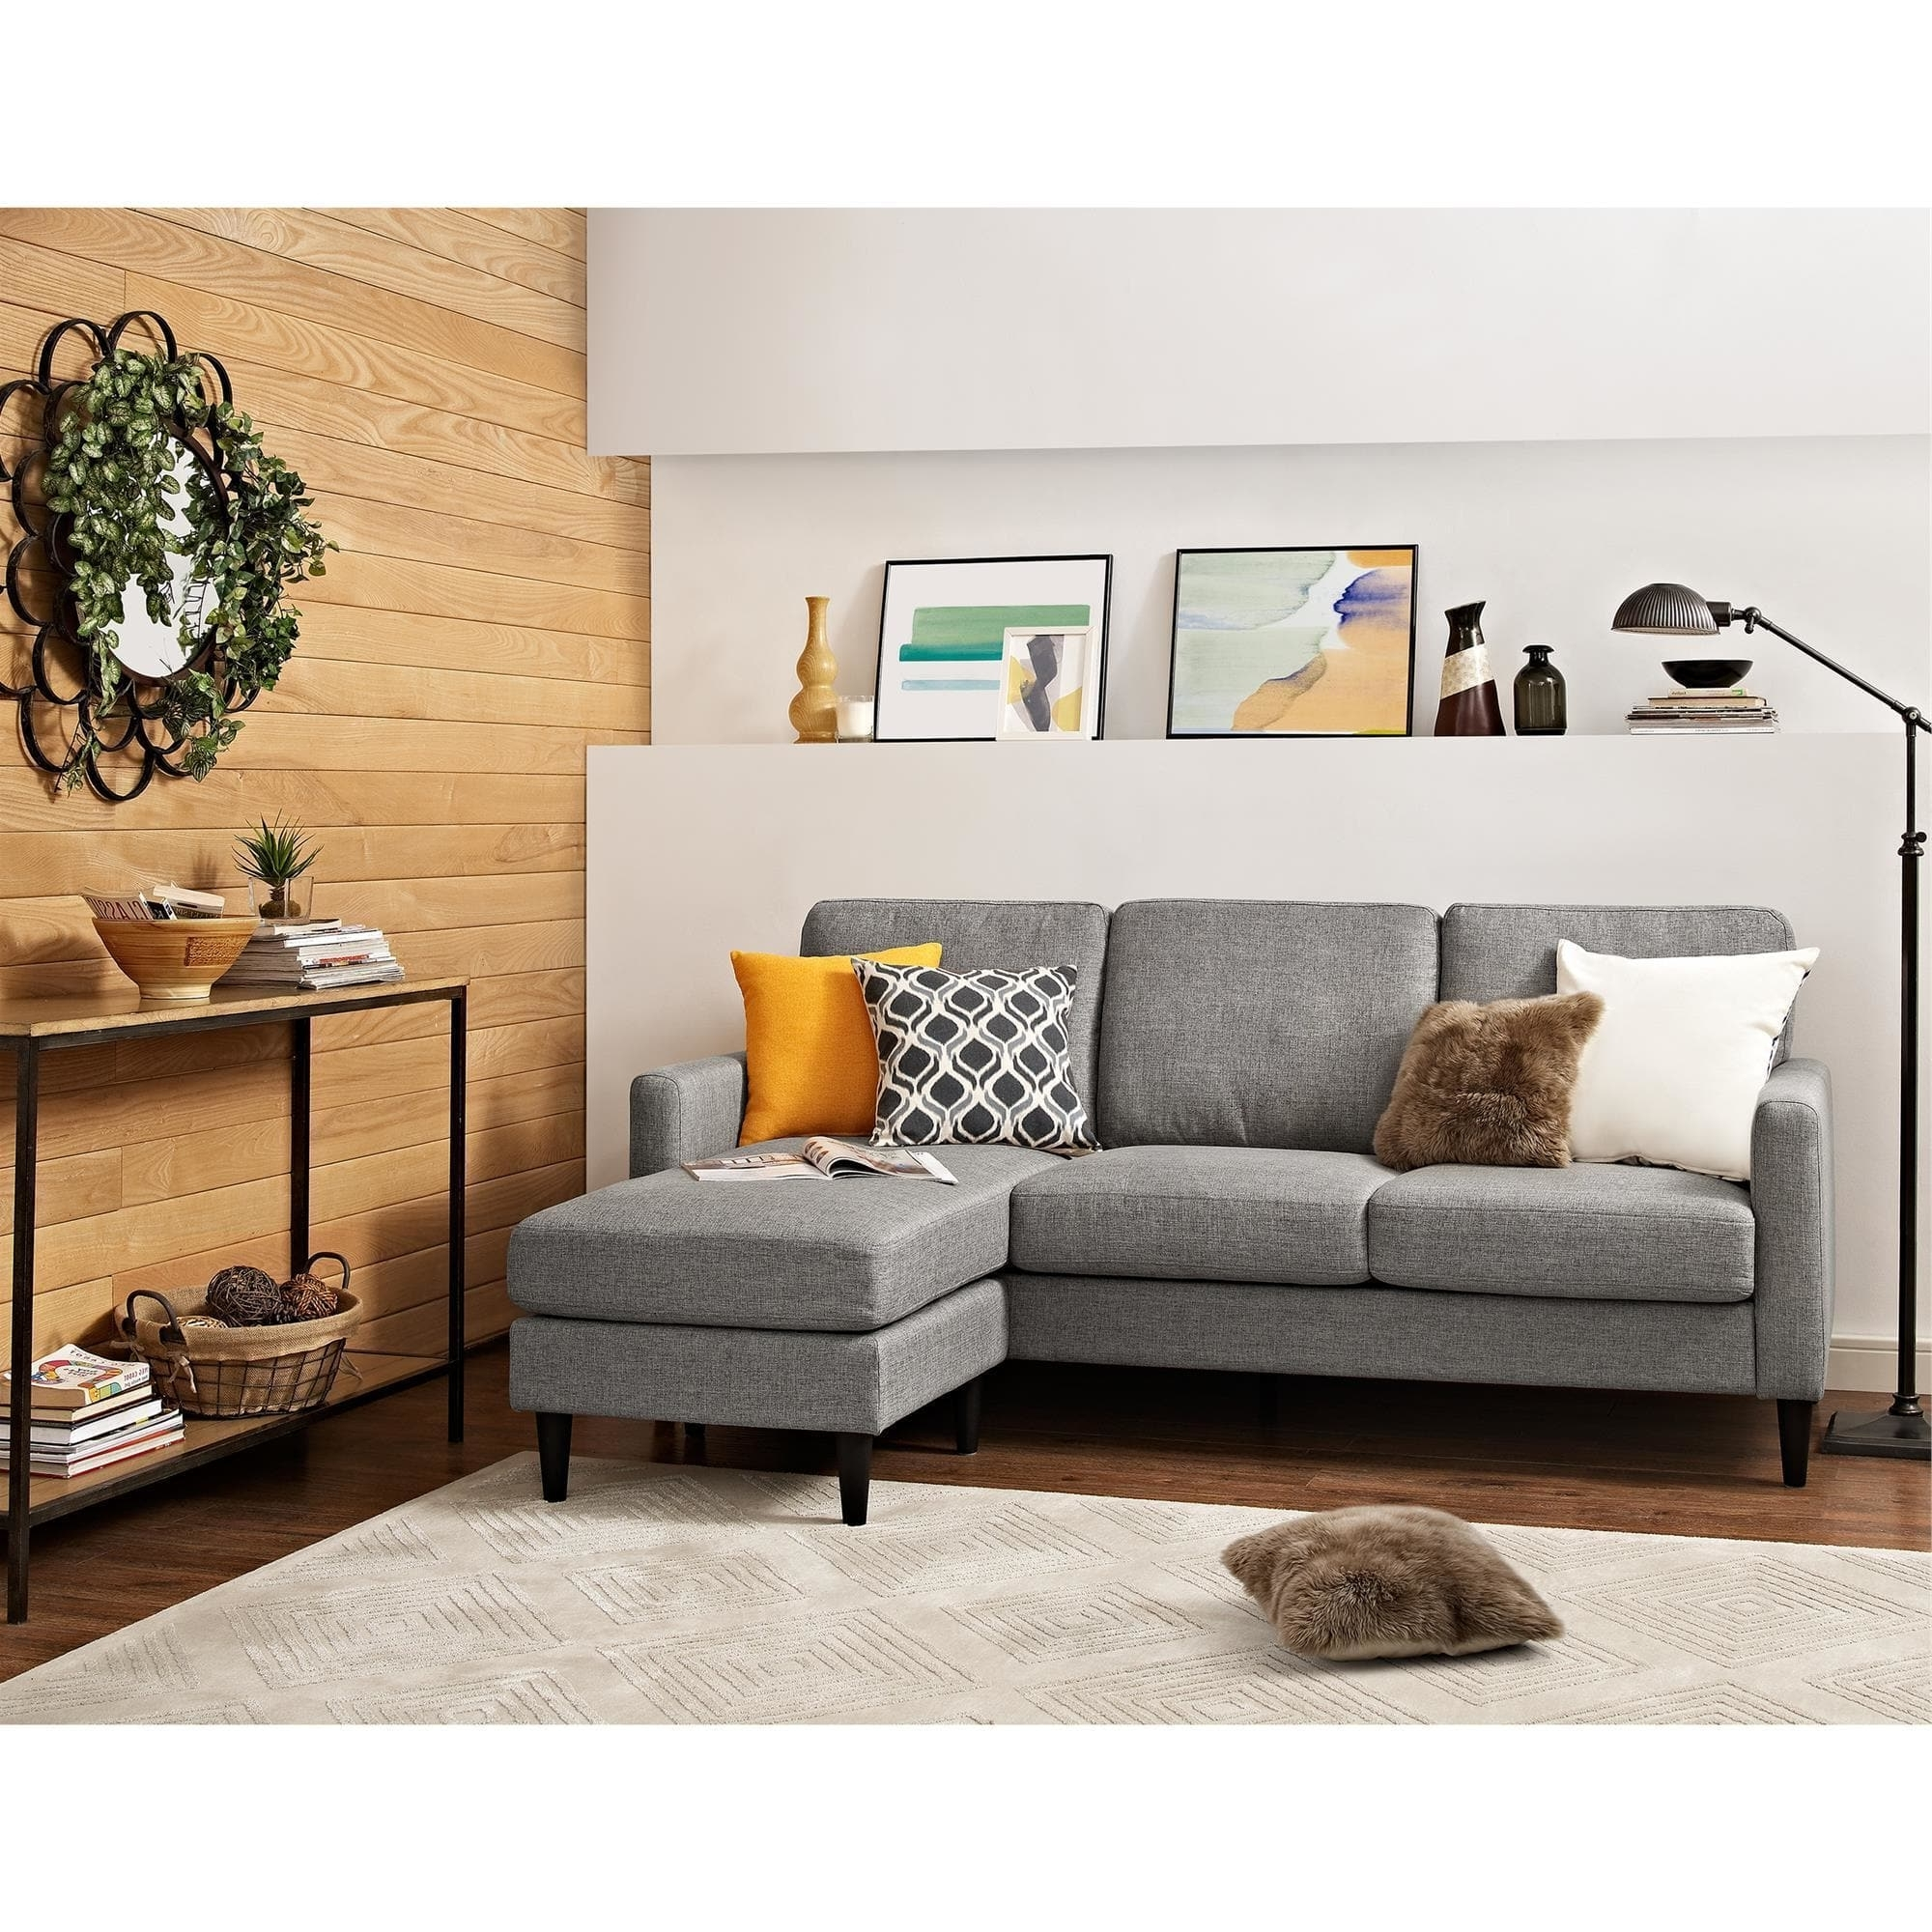 Well Liked Hawaii Sectional Sofas Inside Dorel Living Kaci Grey Sectional Sofa – Free Shipping On Orders (View 7 of 15)